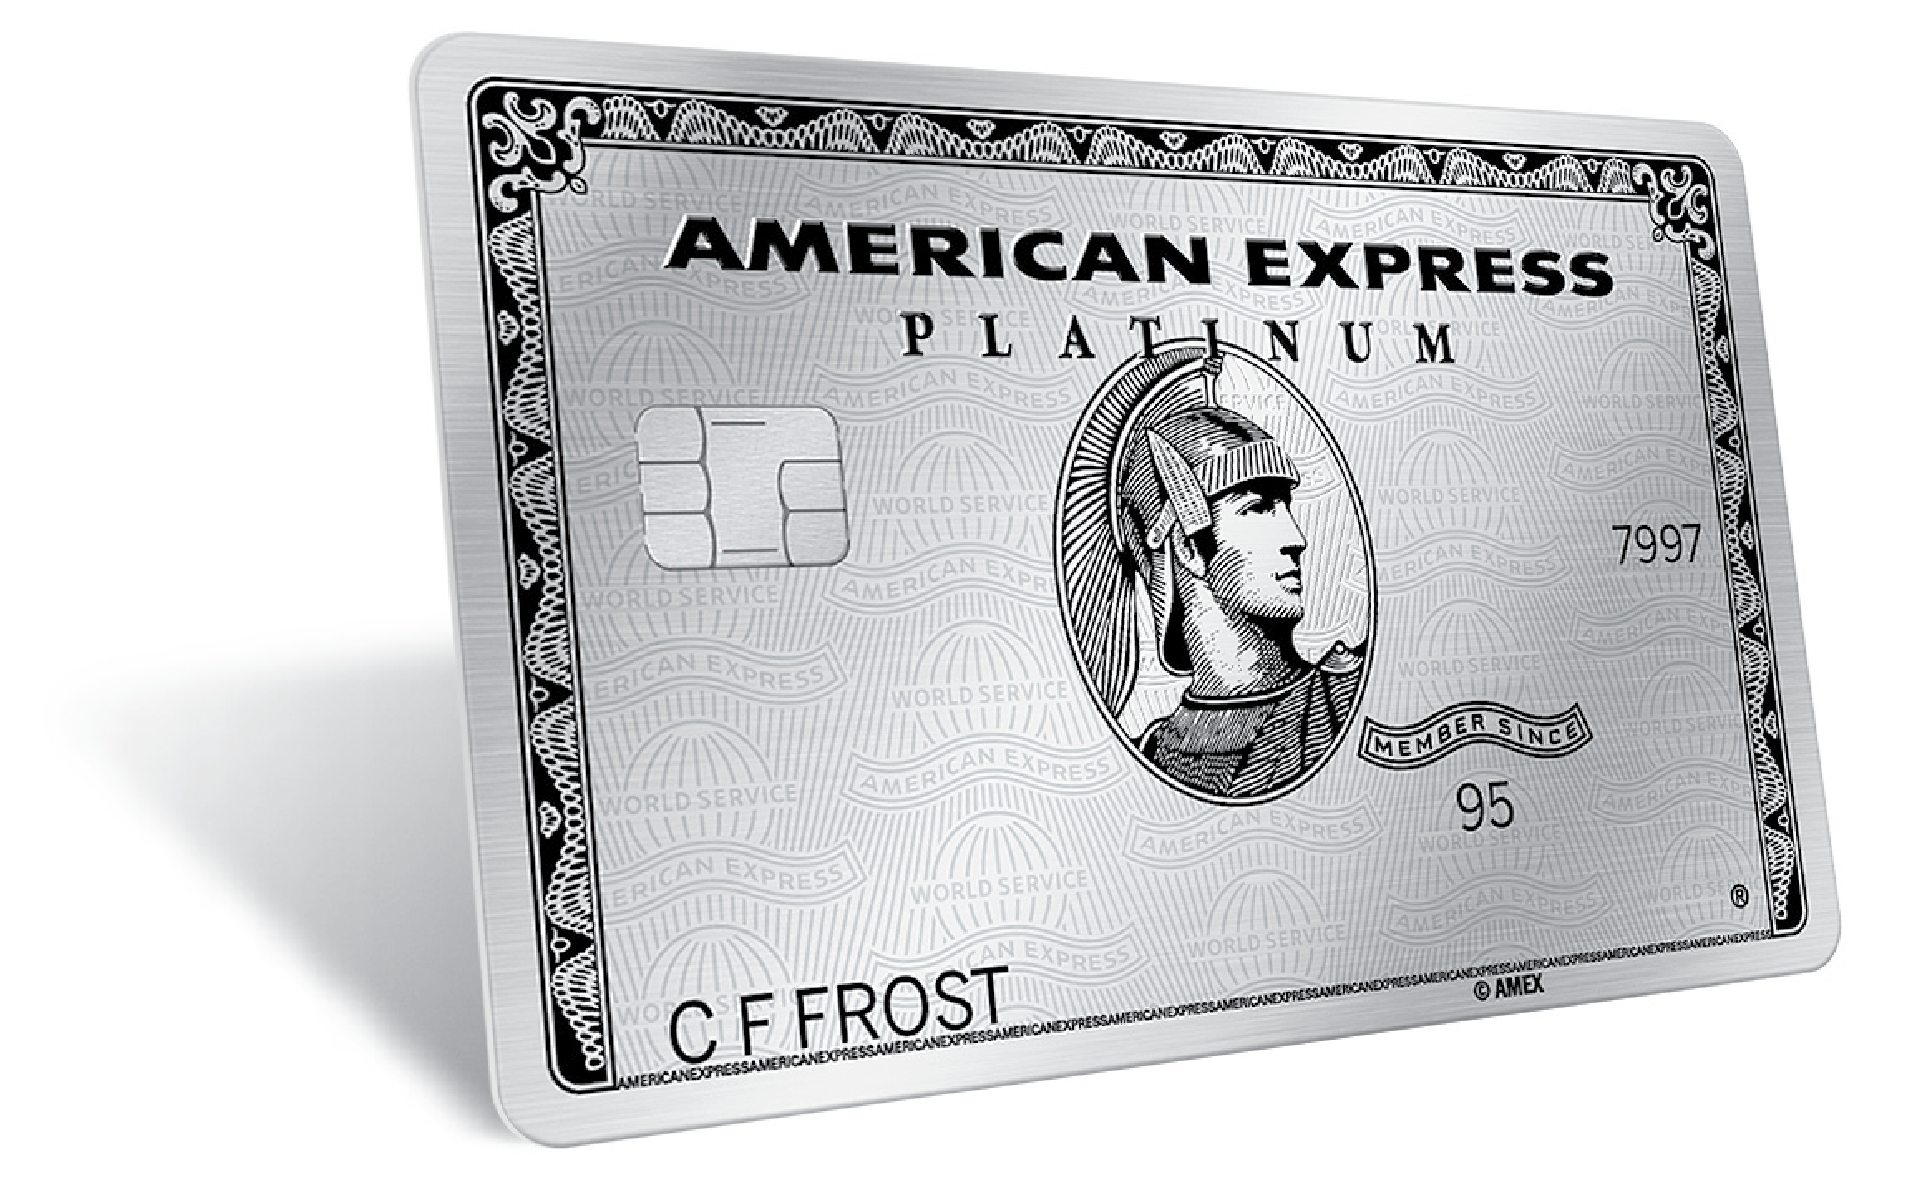 American Express Card >> The American Express Axp Platinum Card Is Stainless Steel